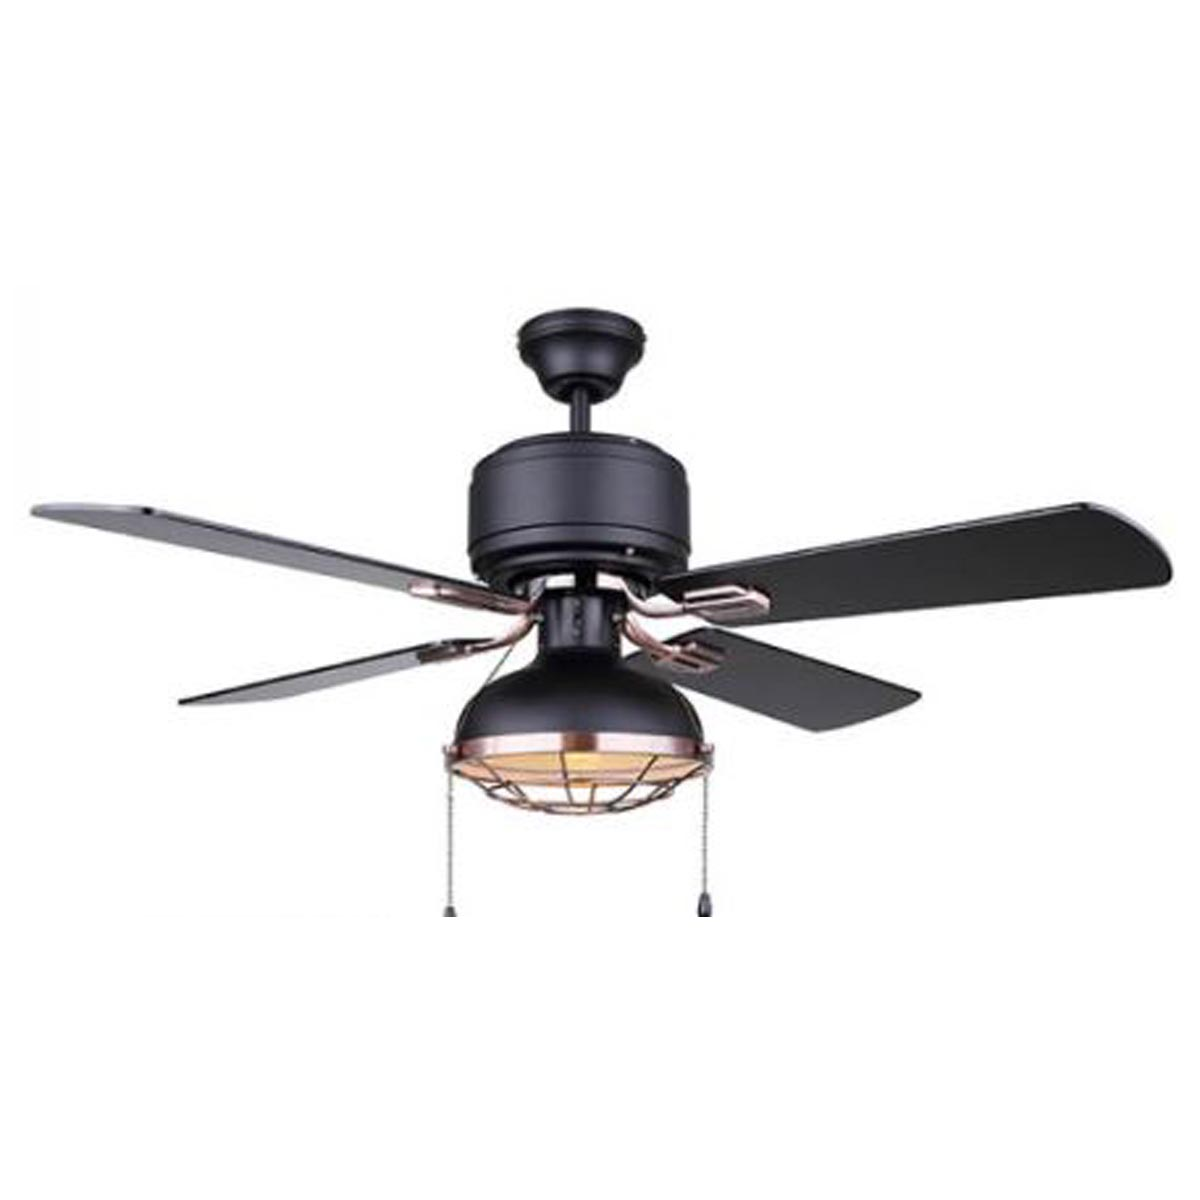 Canarm Gunnar 42 Ceiling Fan With Light Matte Black W Bronze Heeby S Surplus Inc